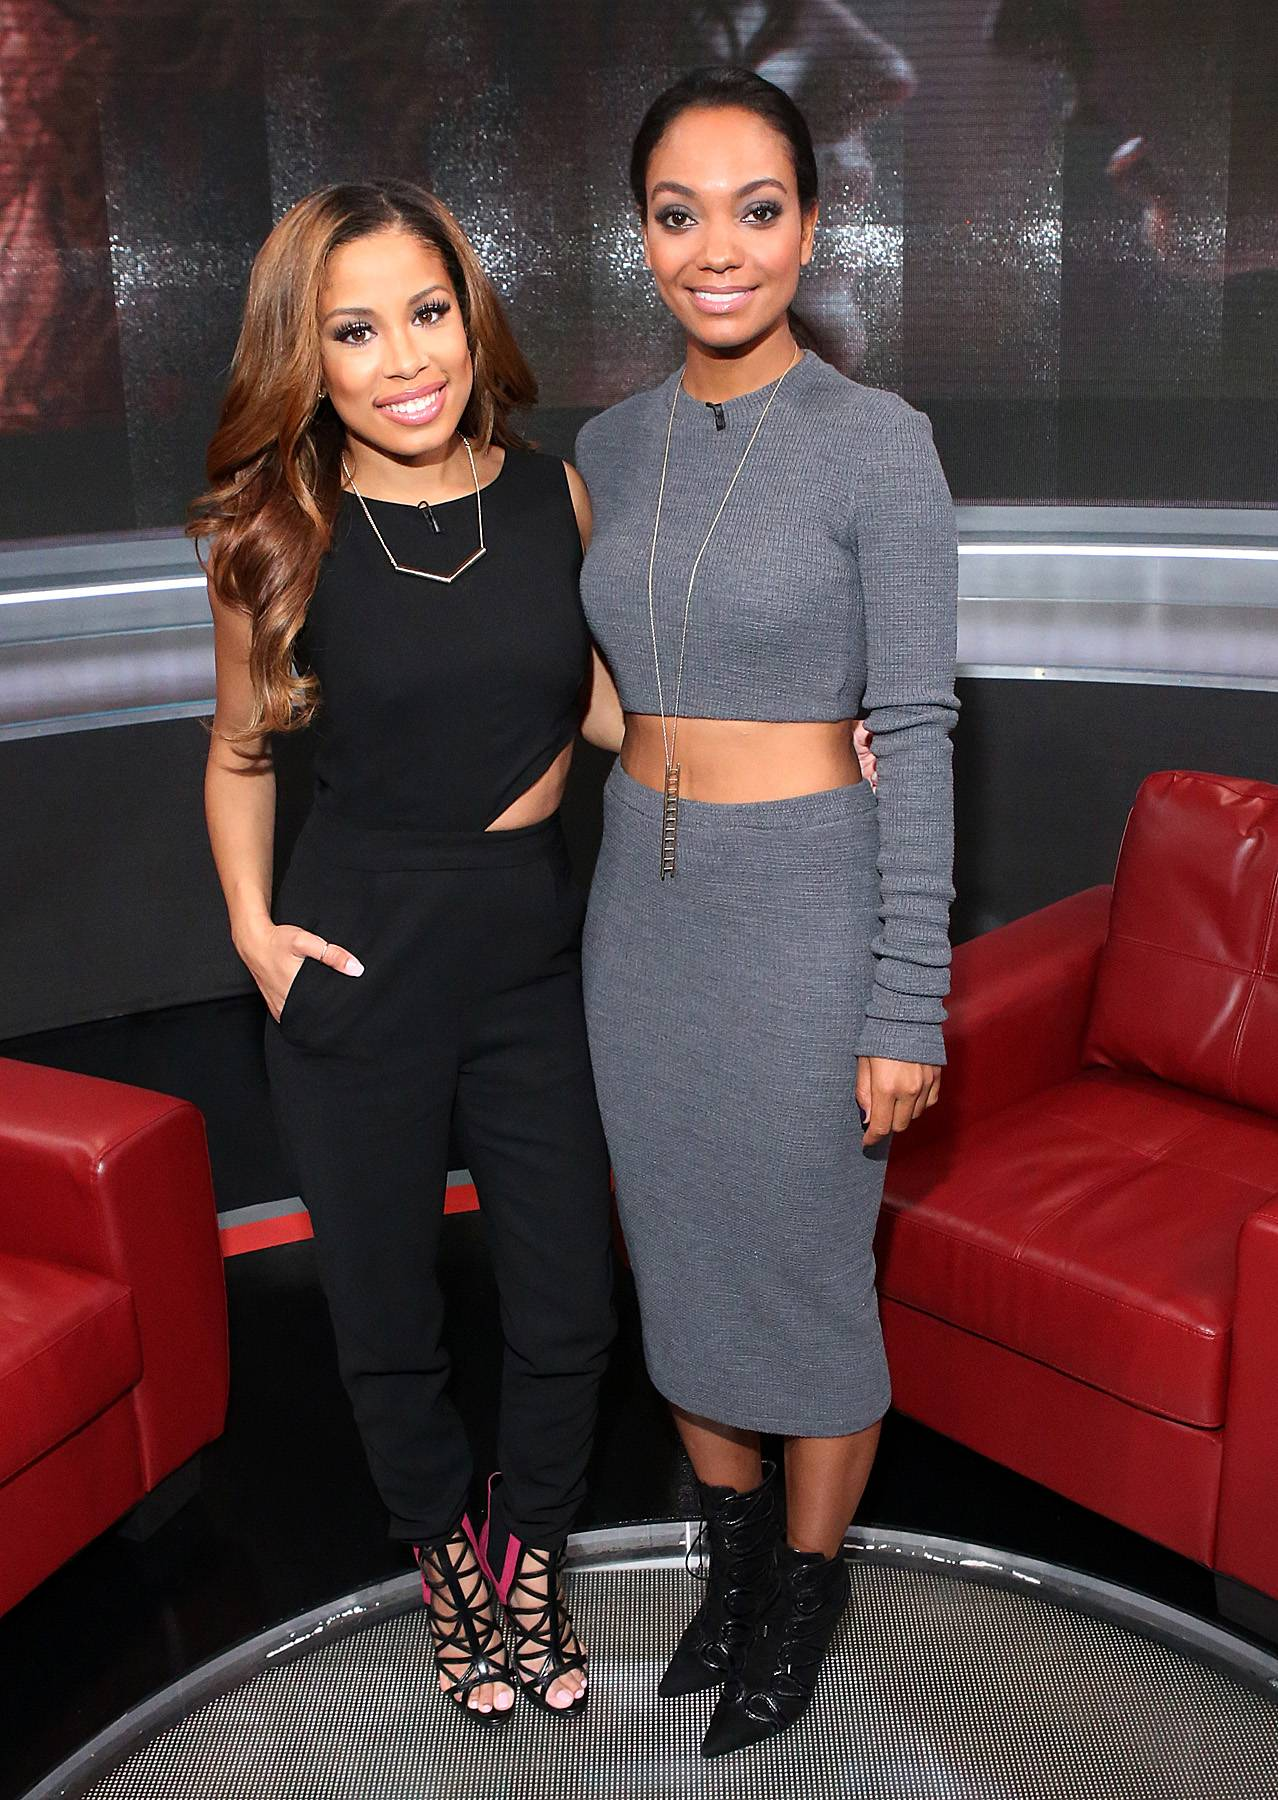 Beautiful Ladies - (Photo by Bennett Raglin/BET/Getty Images)